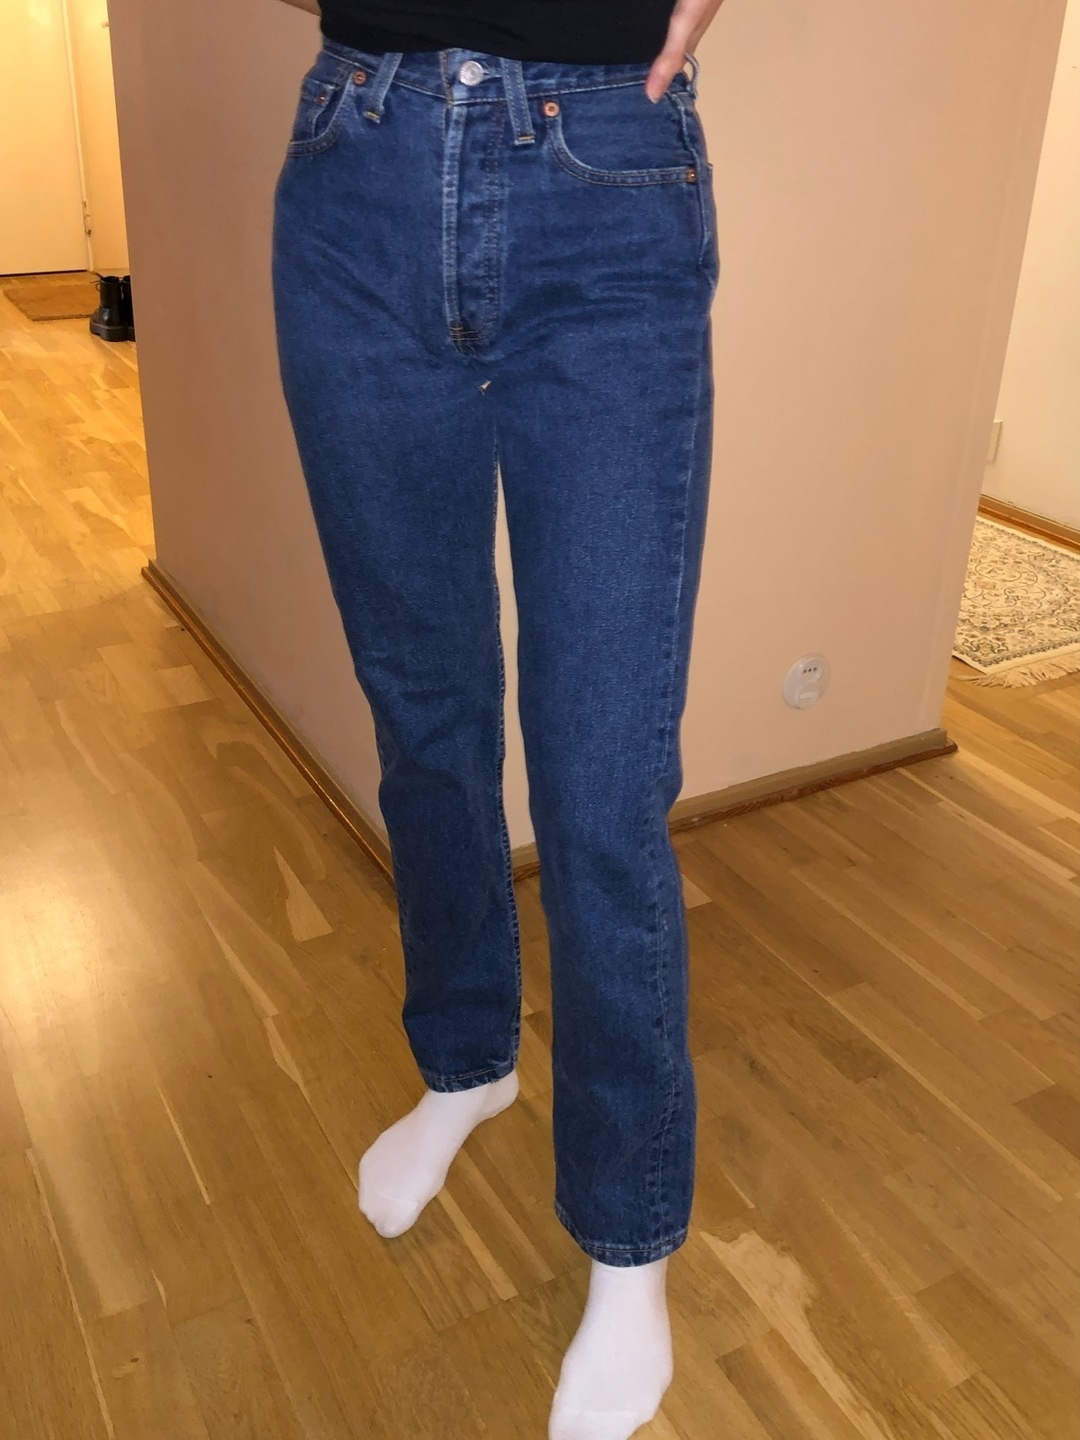 Damers bukser og jeans - LEVI'S photo 4